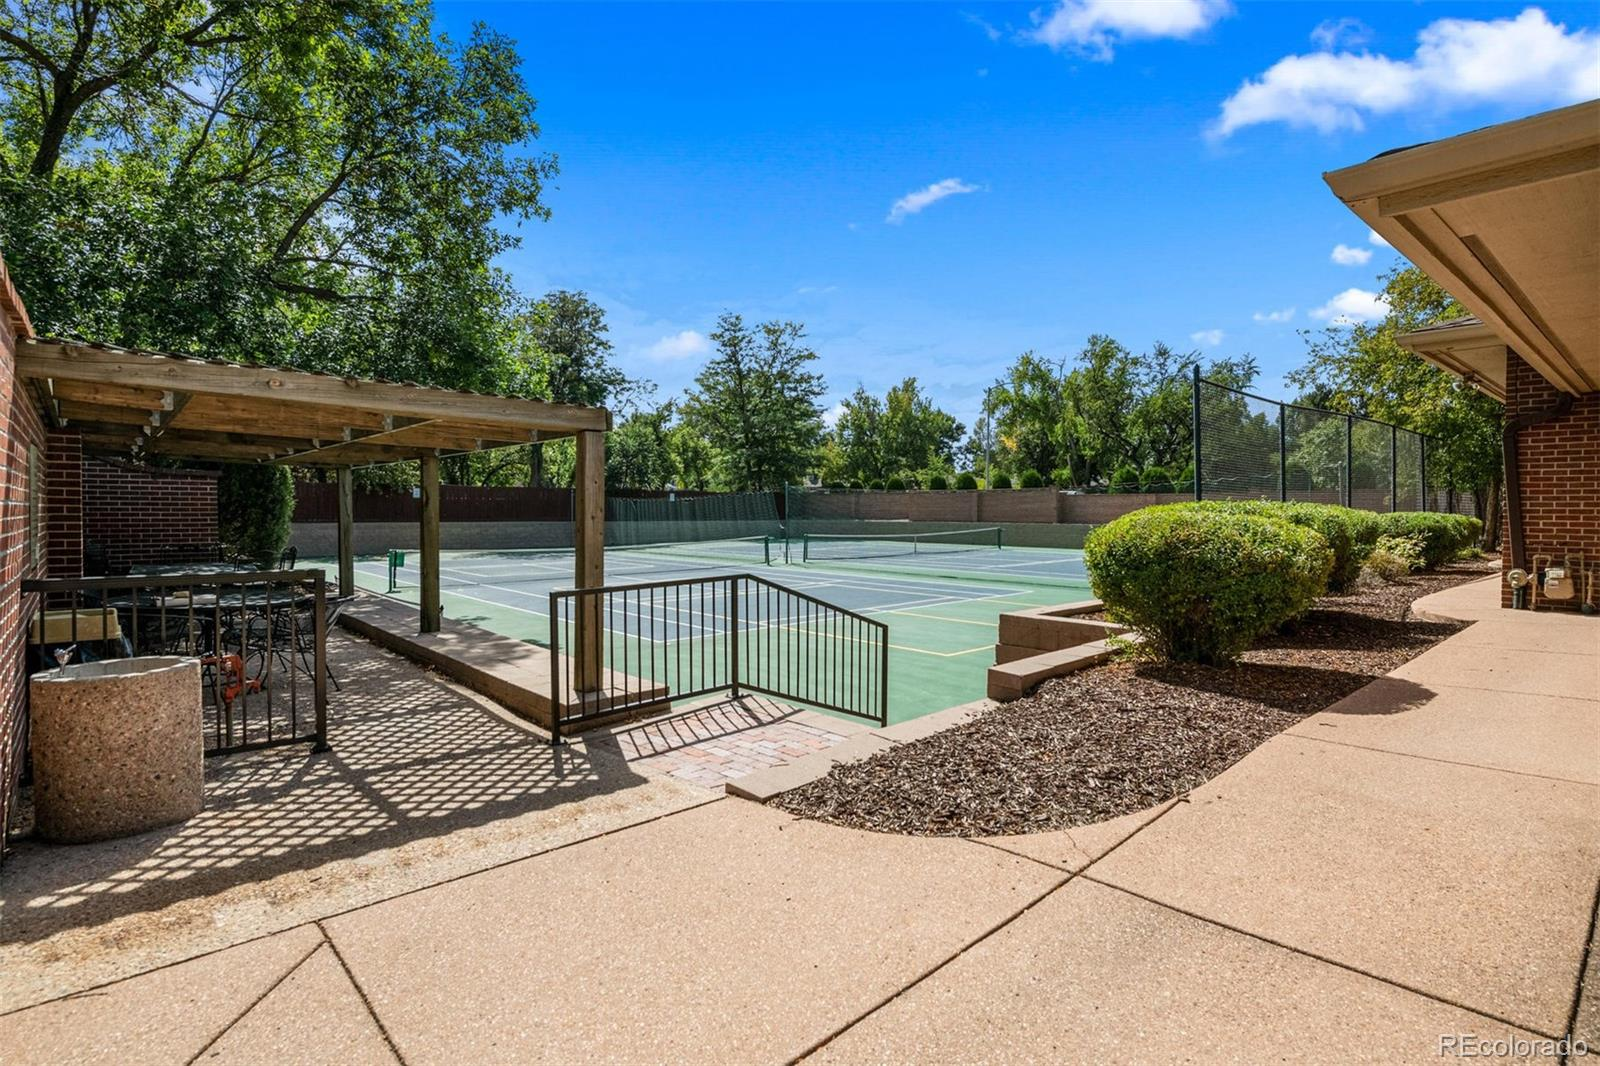 Easy accessibility leads to a happy community in Cherry Hill III HOA